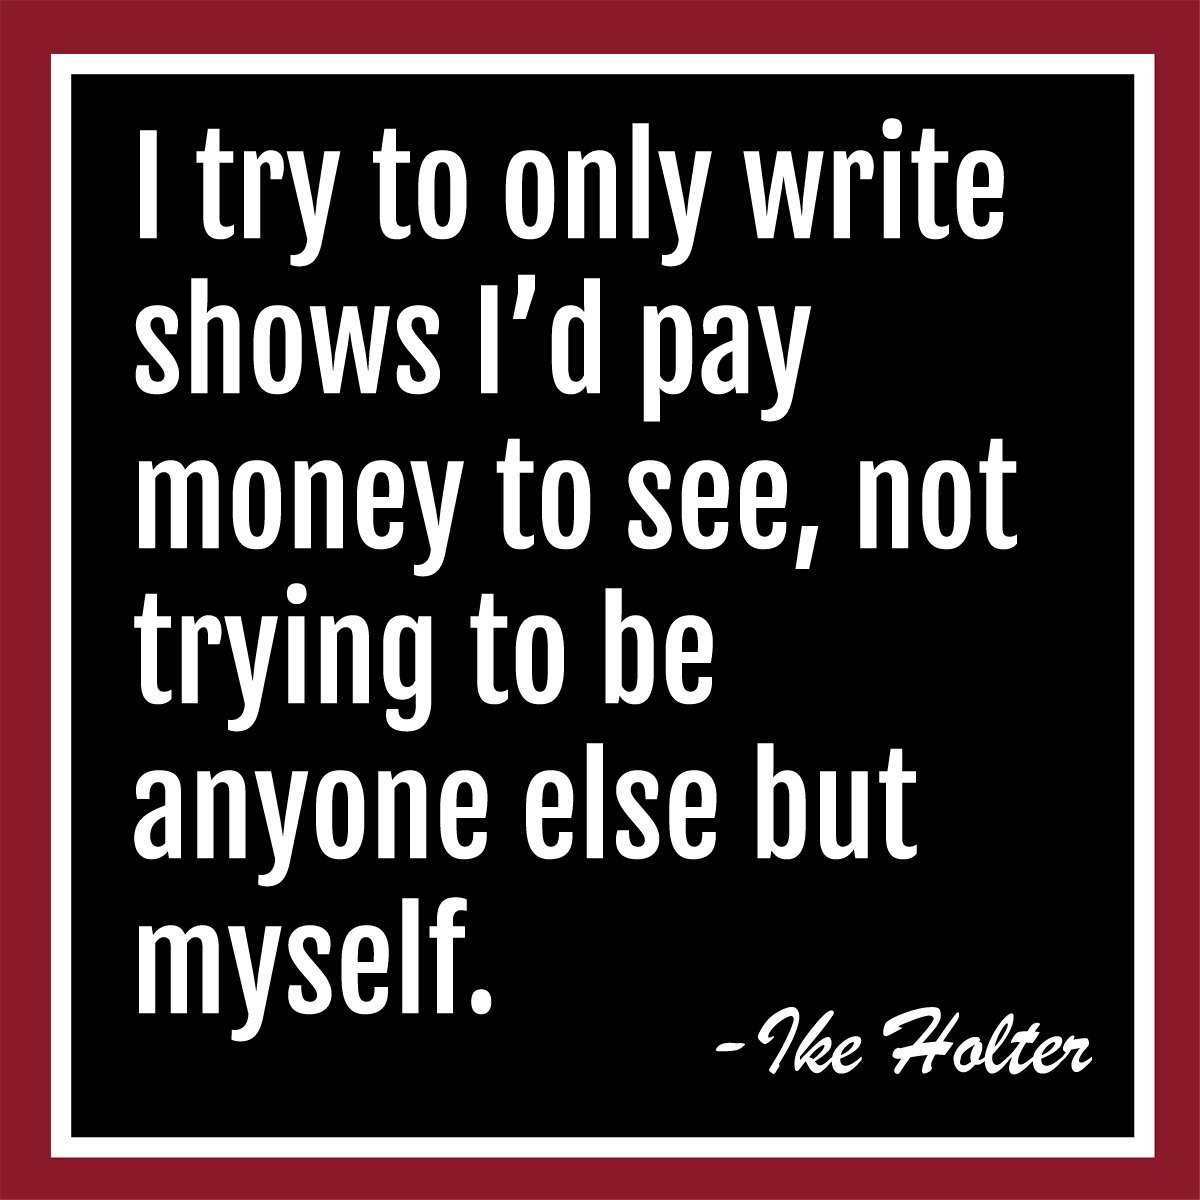 """I try to only write shows I'd pay money to see, not trying to be anyone else but myself."" #WisdomWednesday https://t.co/UBqyvgCVnl"